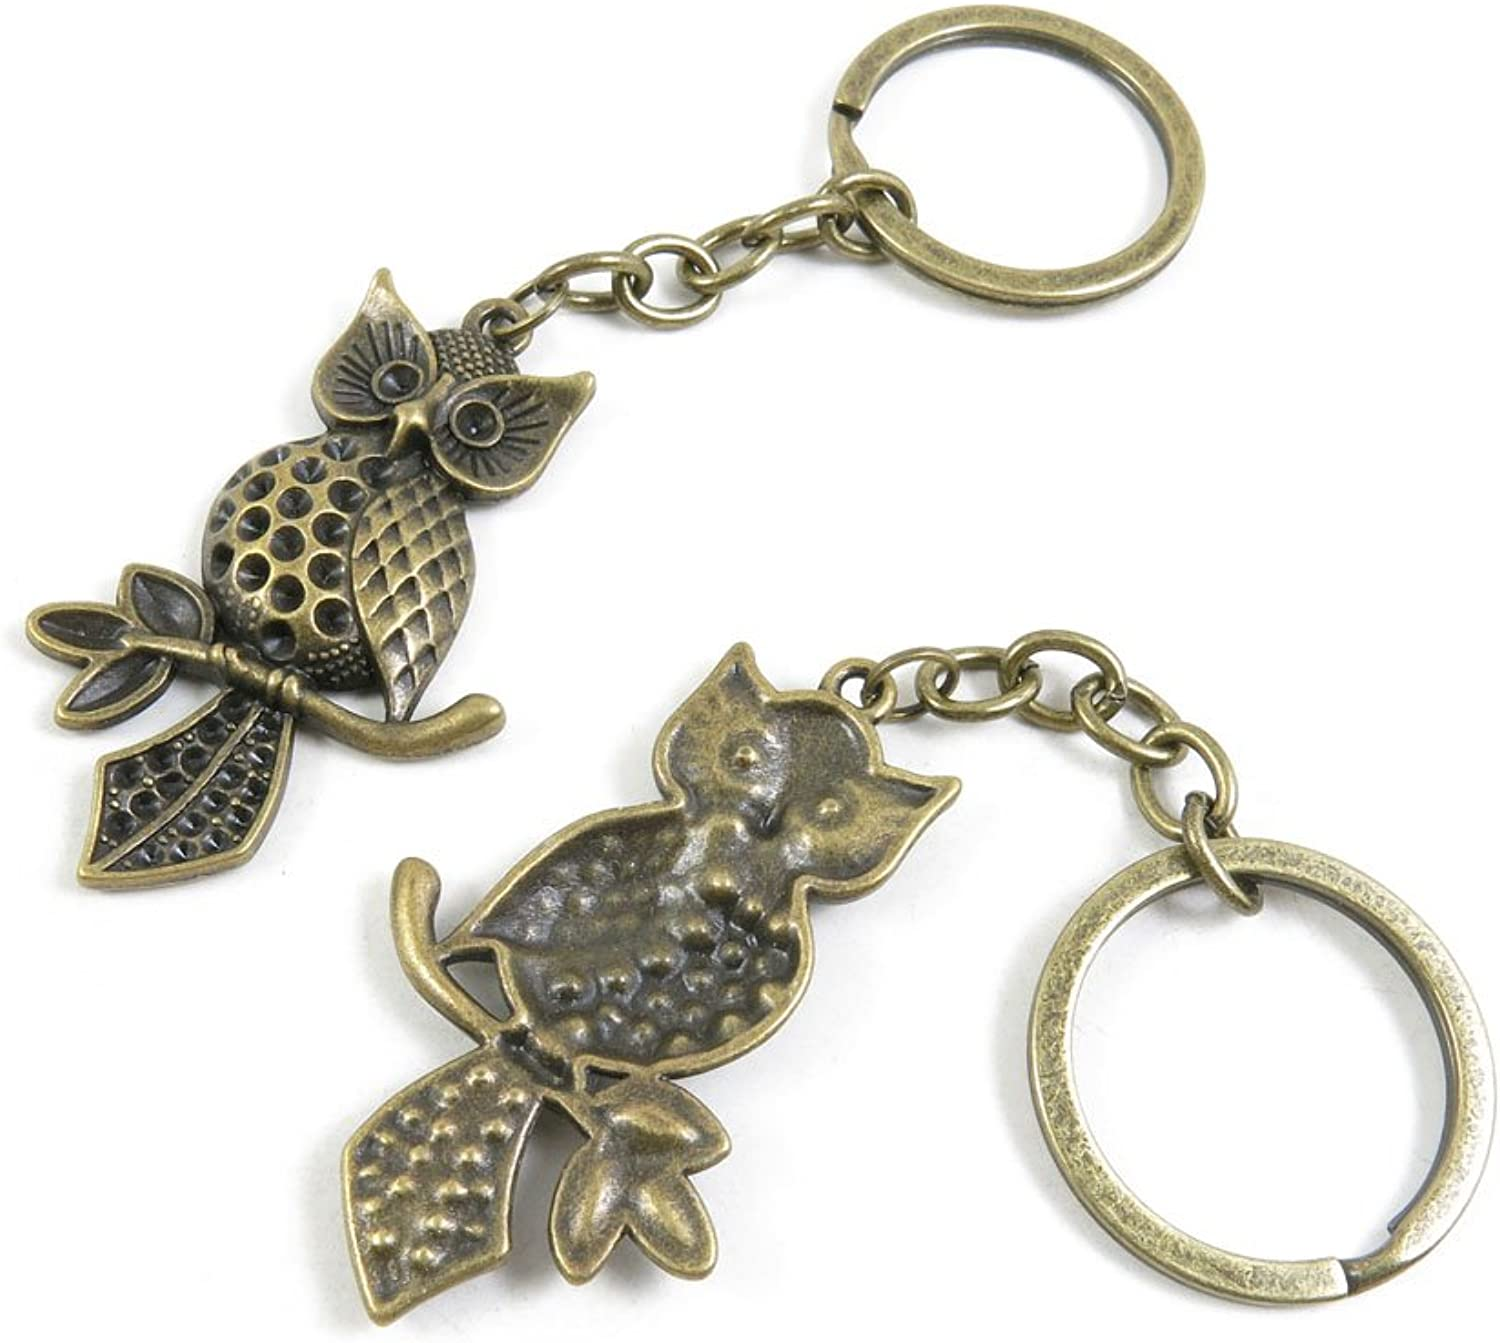 90 Pieces Fashion Jewelry Keyring Keychain Door Car Key Tag Ring Chain Supplier Supply Wholesale Bulk Lots Z5HJ4 Owl